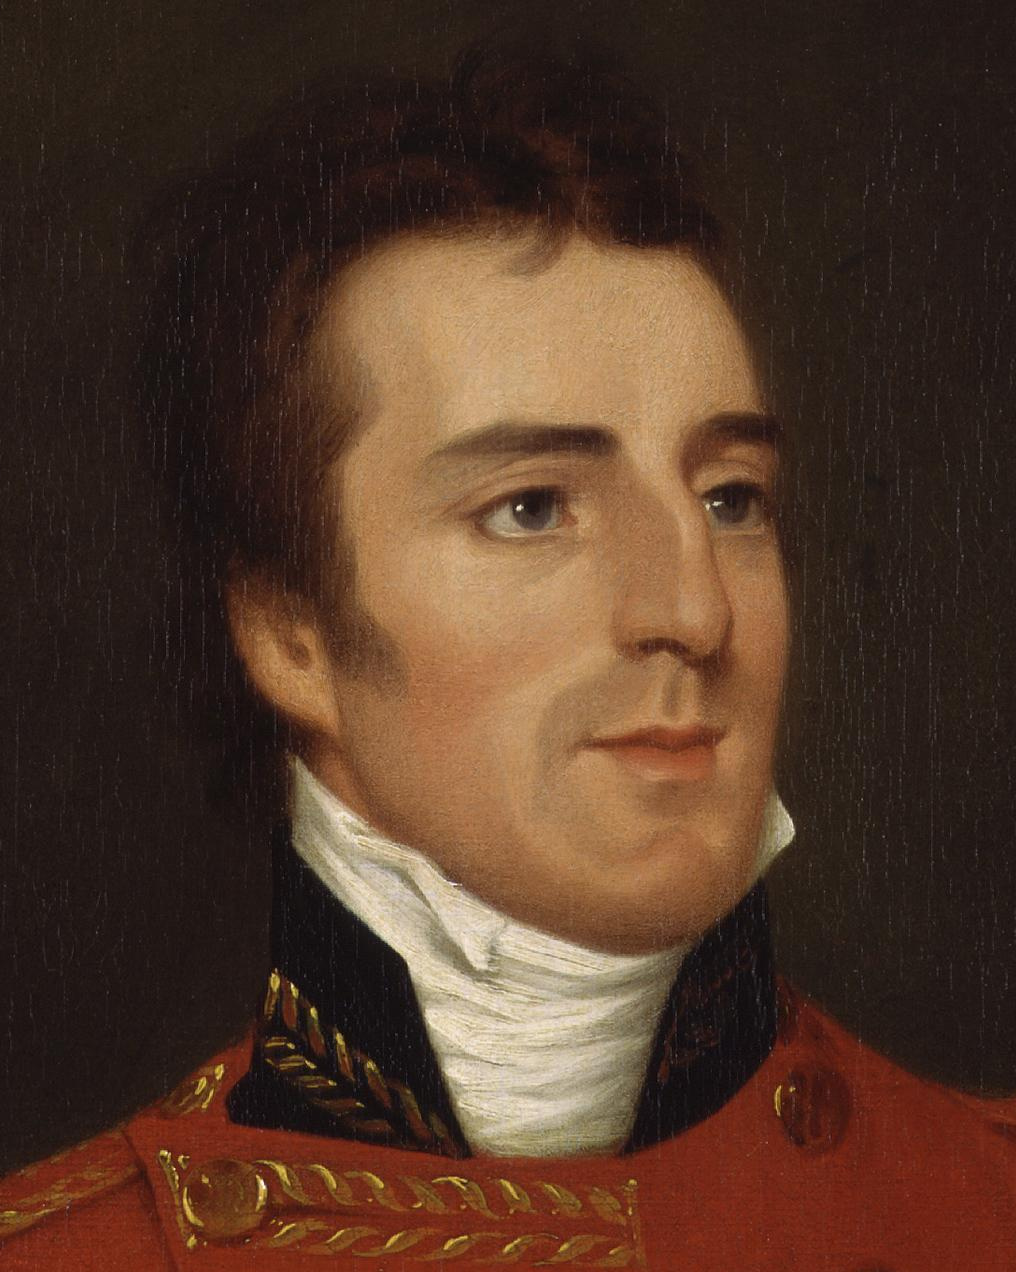 arthur wellesley 1 duke of wellington wikipedia. Black Bedroom Furniture Sets. Home Design Ideas